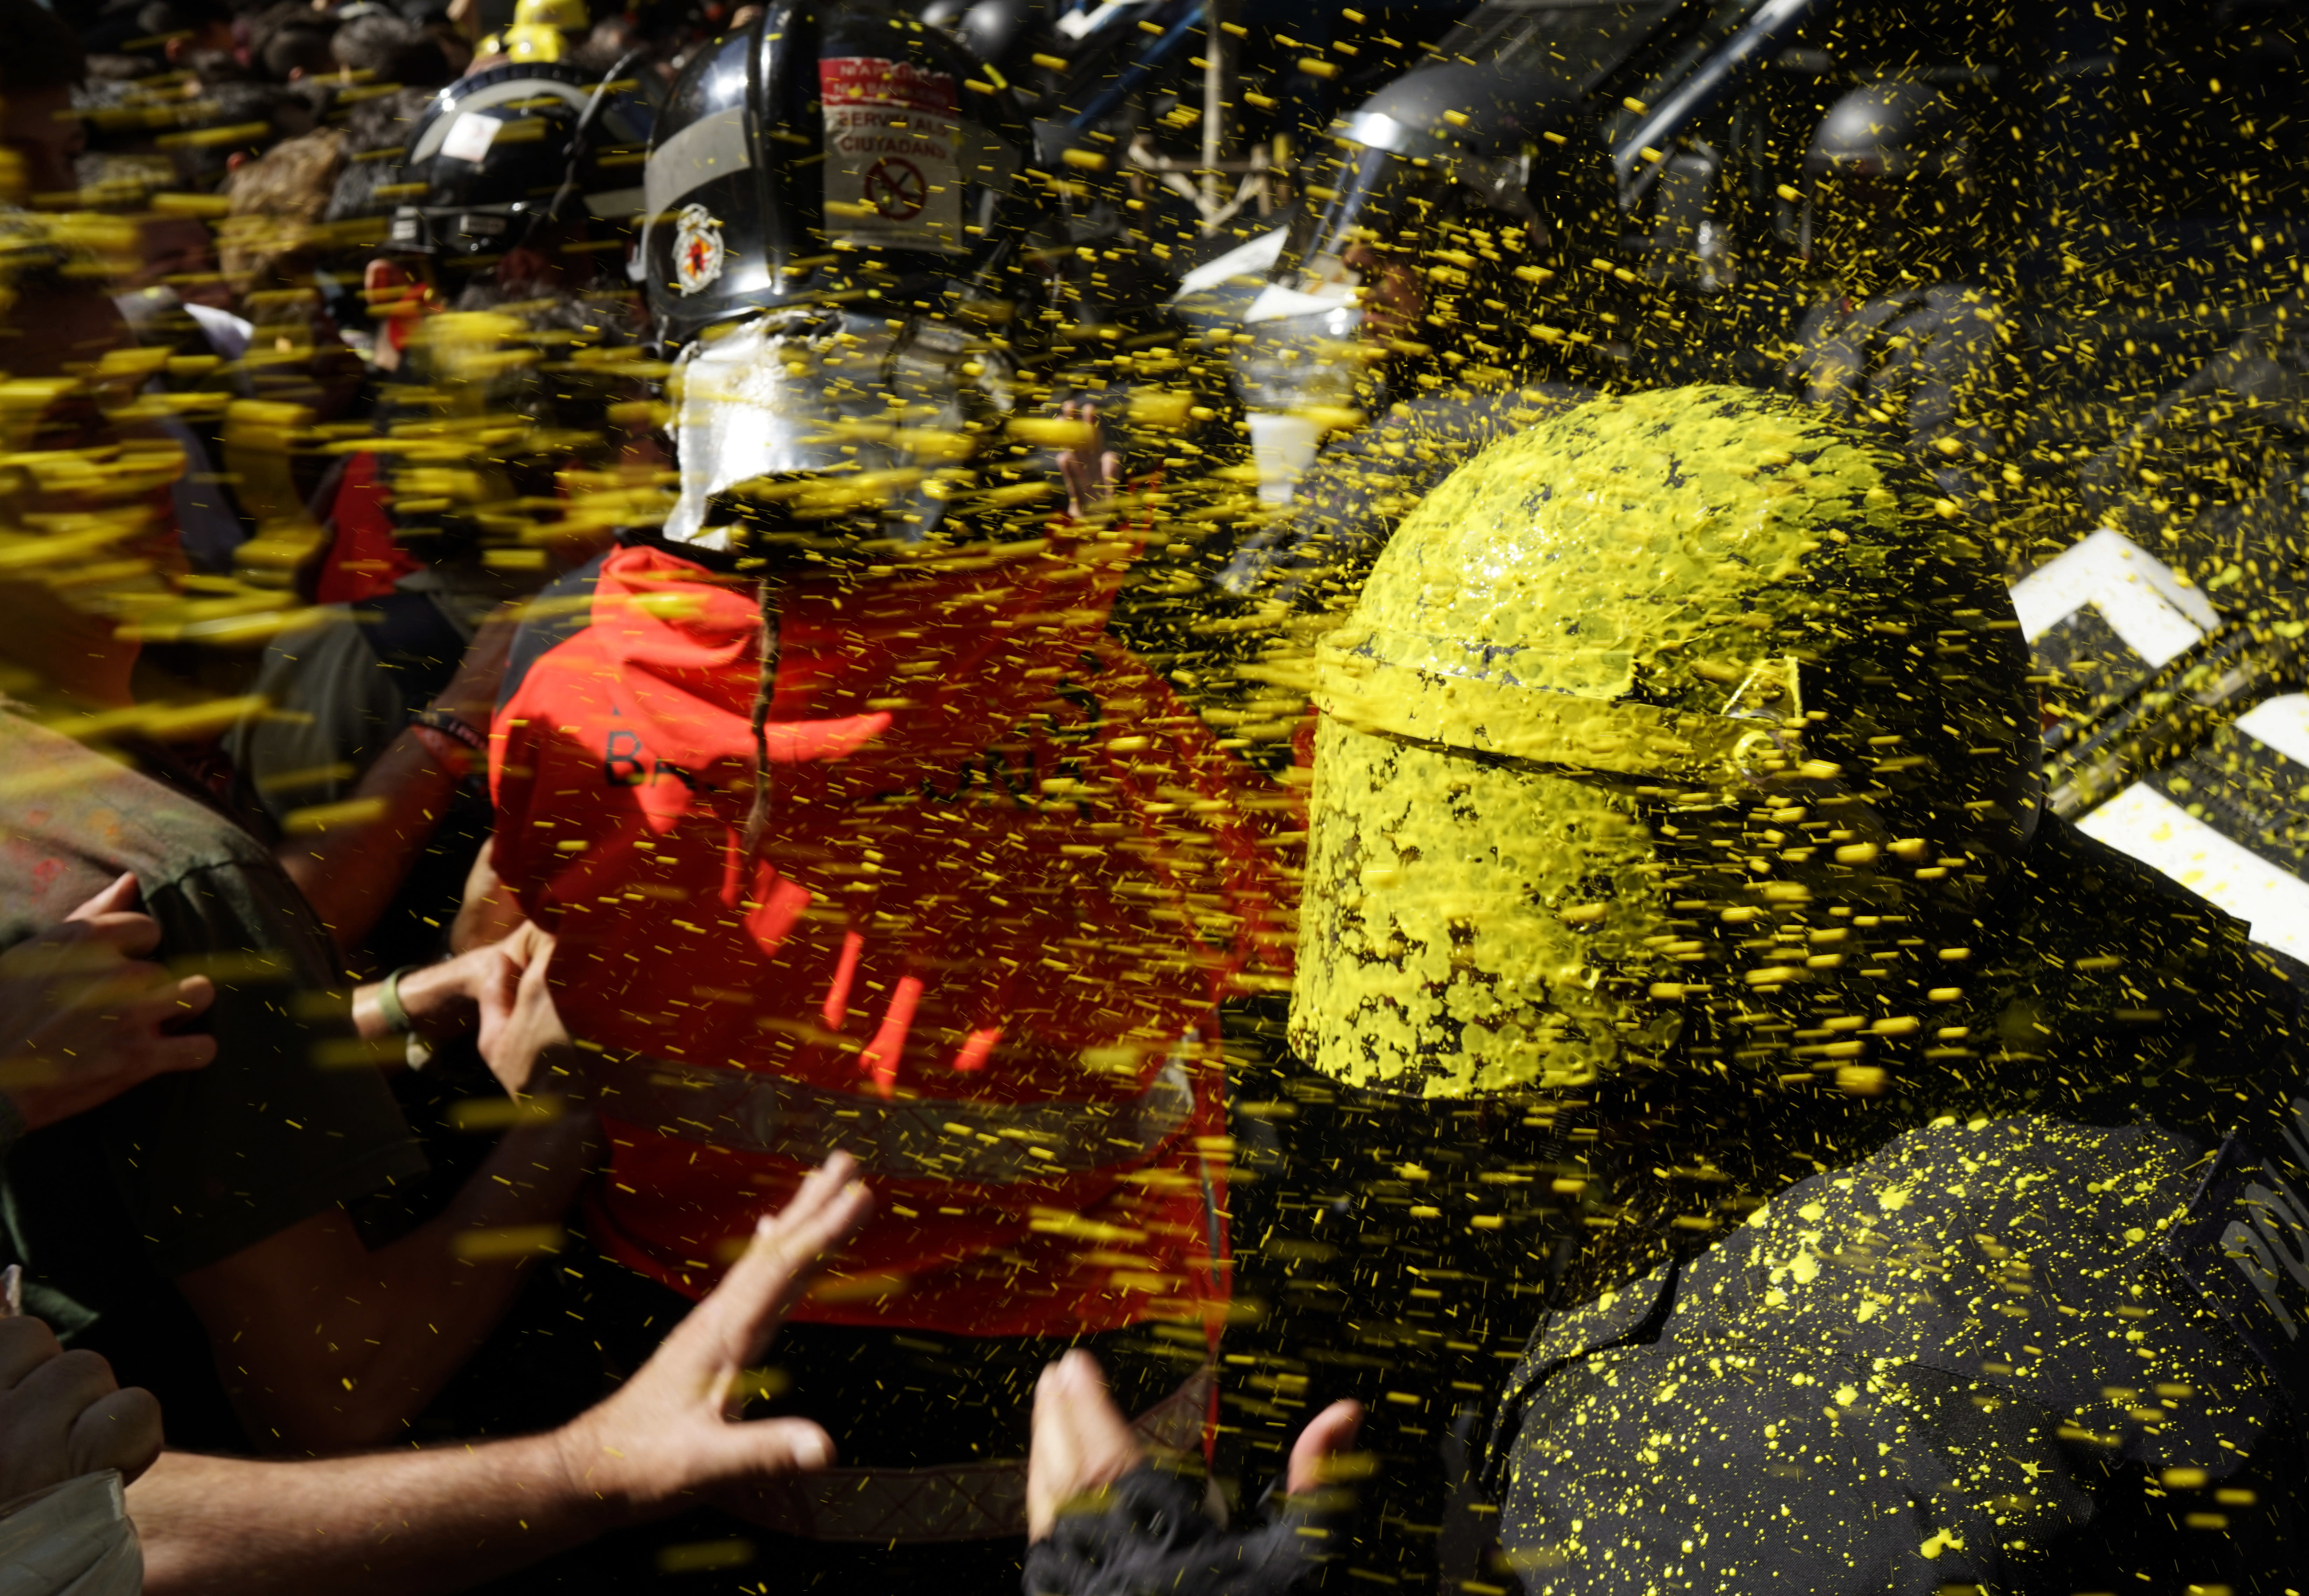 Pro independence demonstrators throw paint at Catalan police officers during clashes in Barcelona, Spain, on Saturday, Sept. 29, 2018. Catalan separatists clashed with police on Saturday in downtown Barcelona as tensions increase before the anniversary of the Spanish region's illegal referendum on secession that ended in violent raids by security forces. (AP Photo/Daniel Cole)